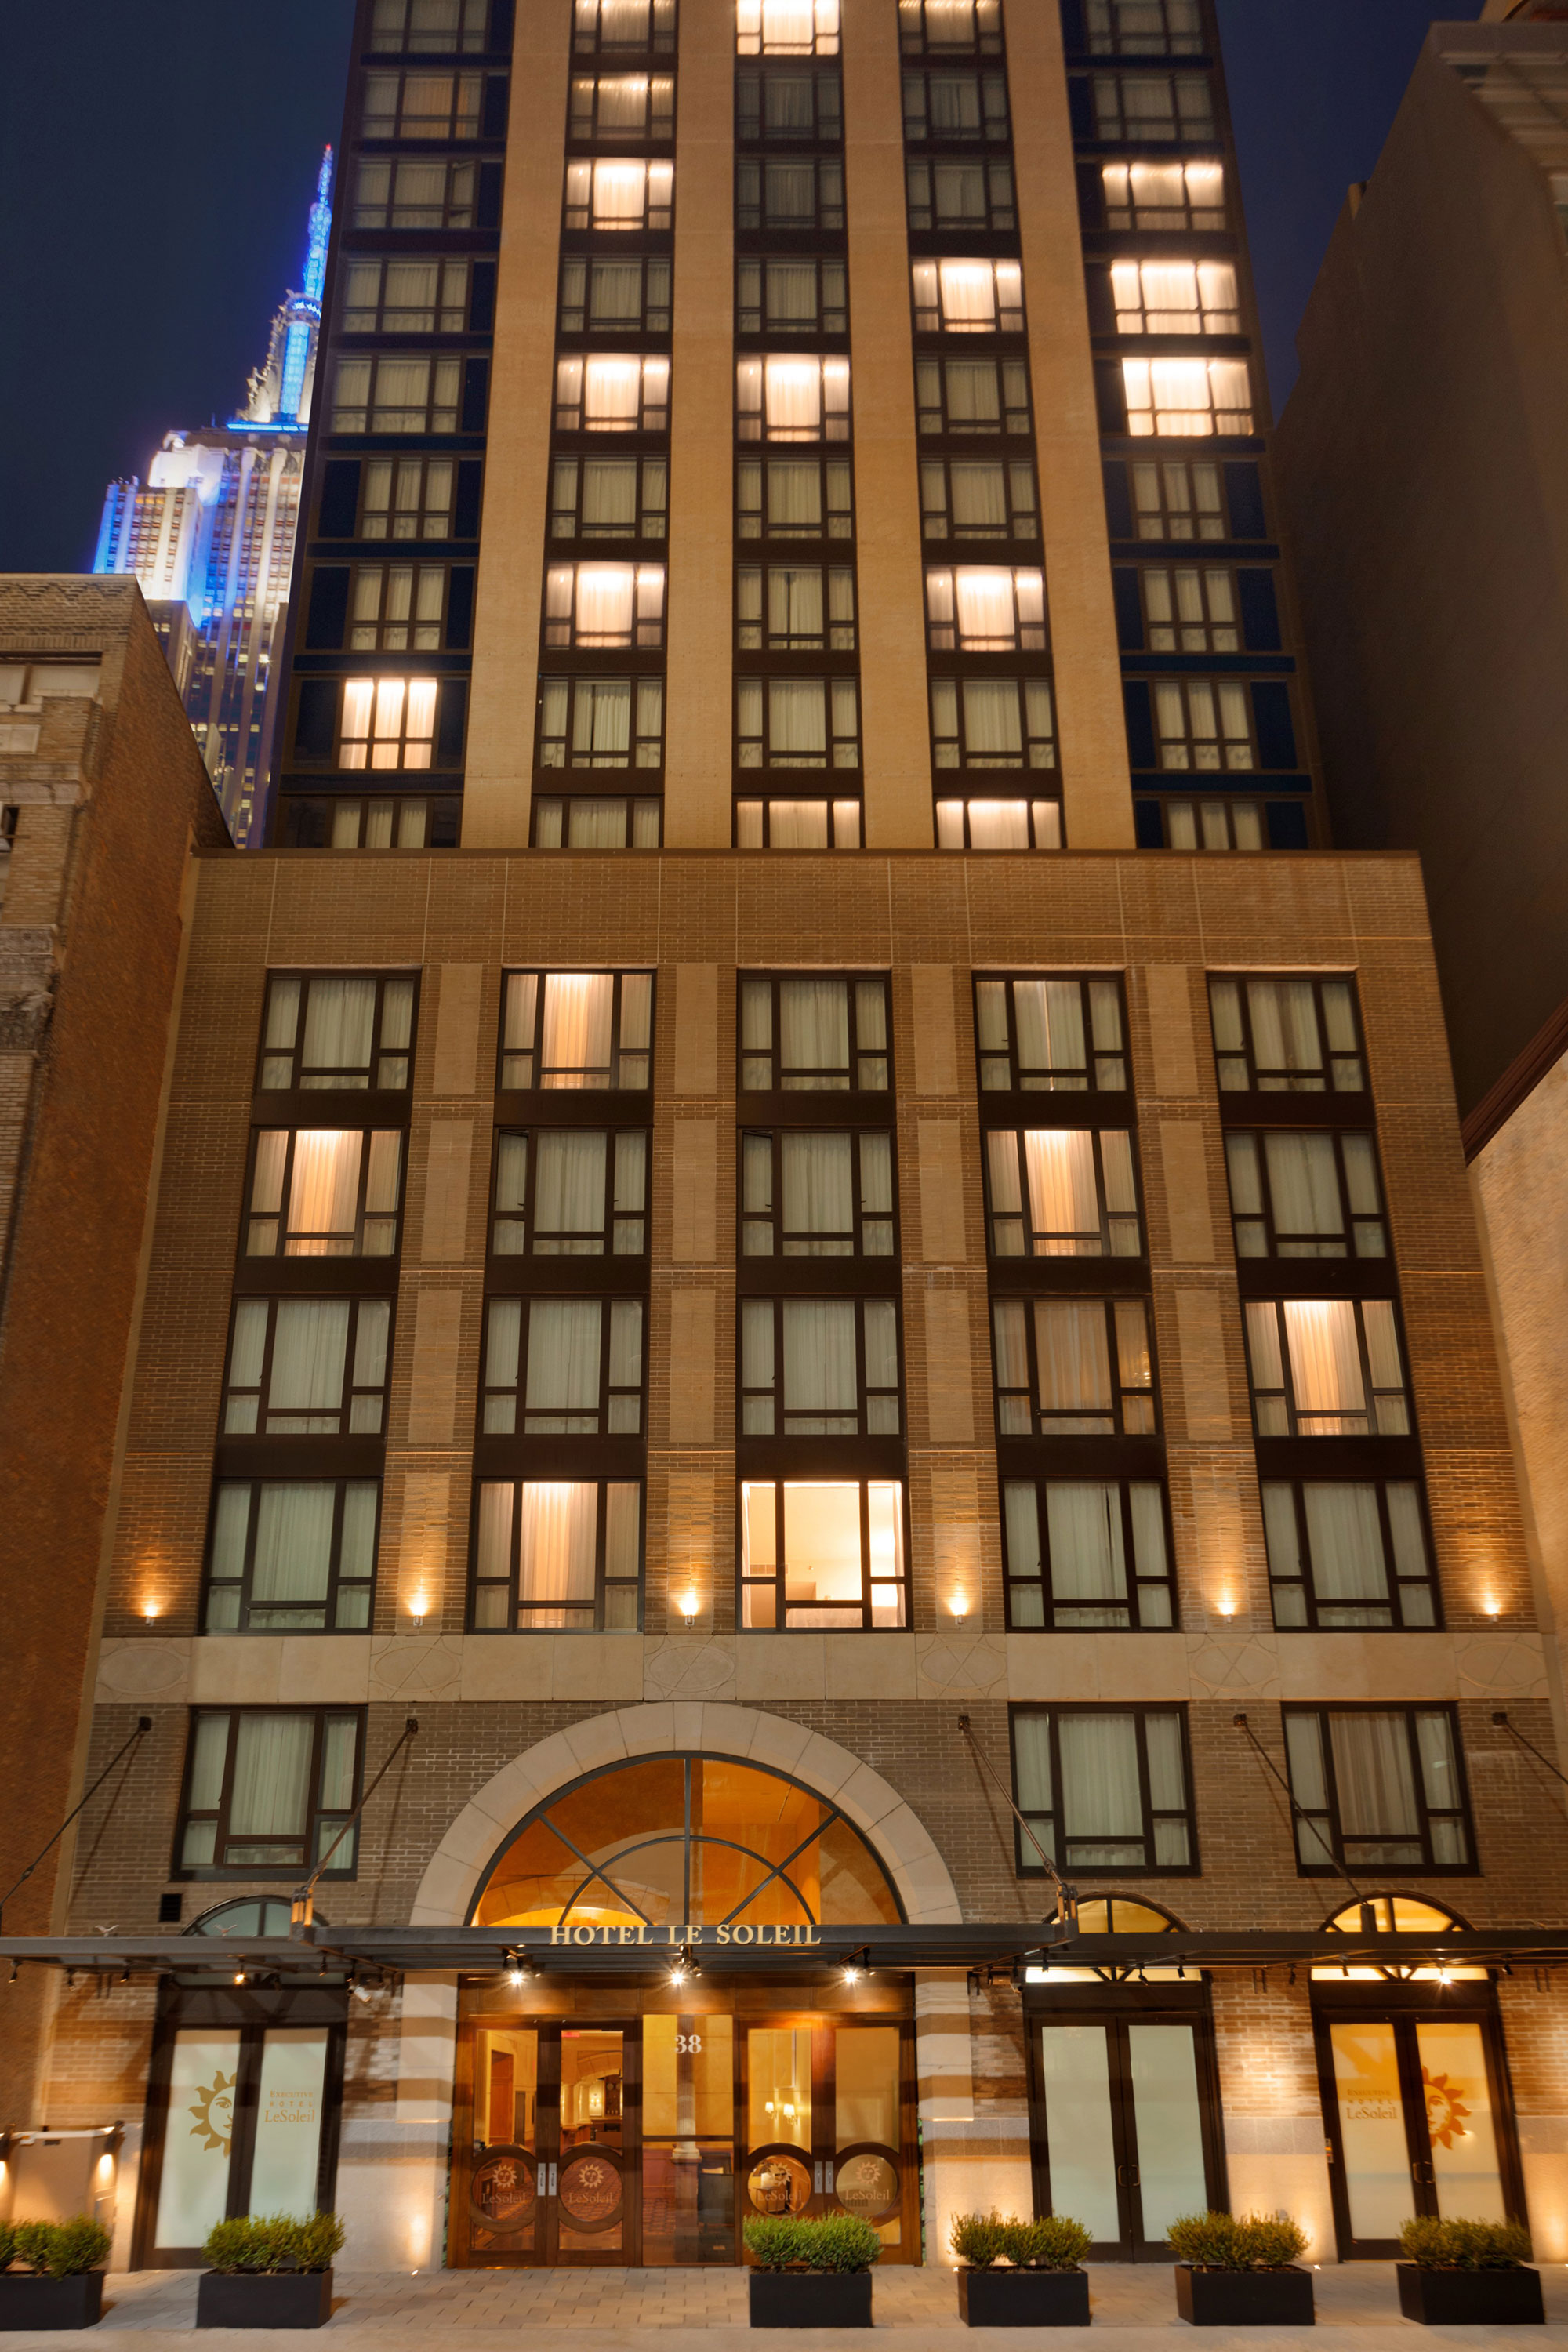 Executive Hotel Le Soleil New York Introduces New